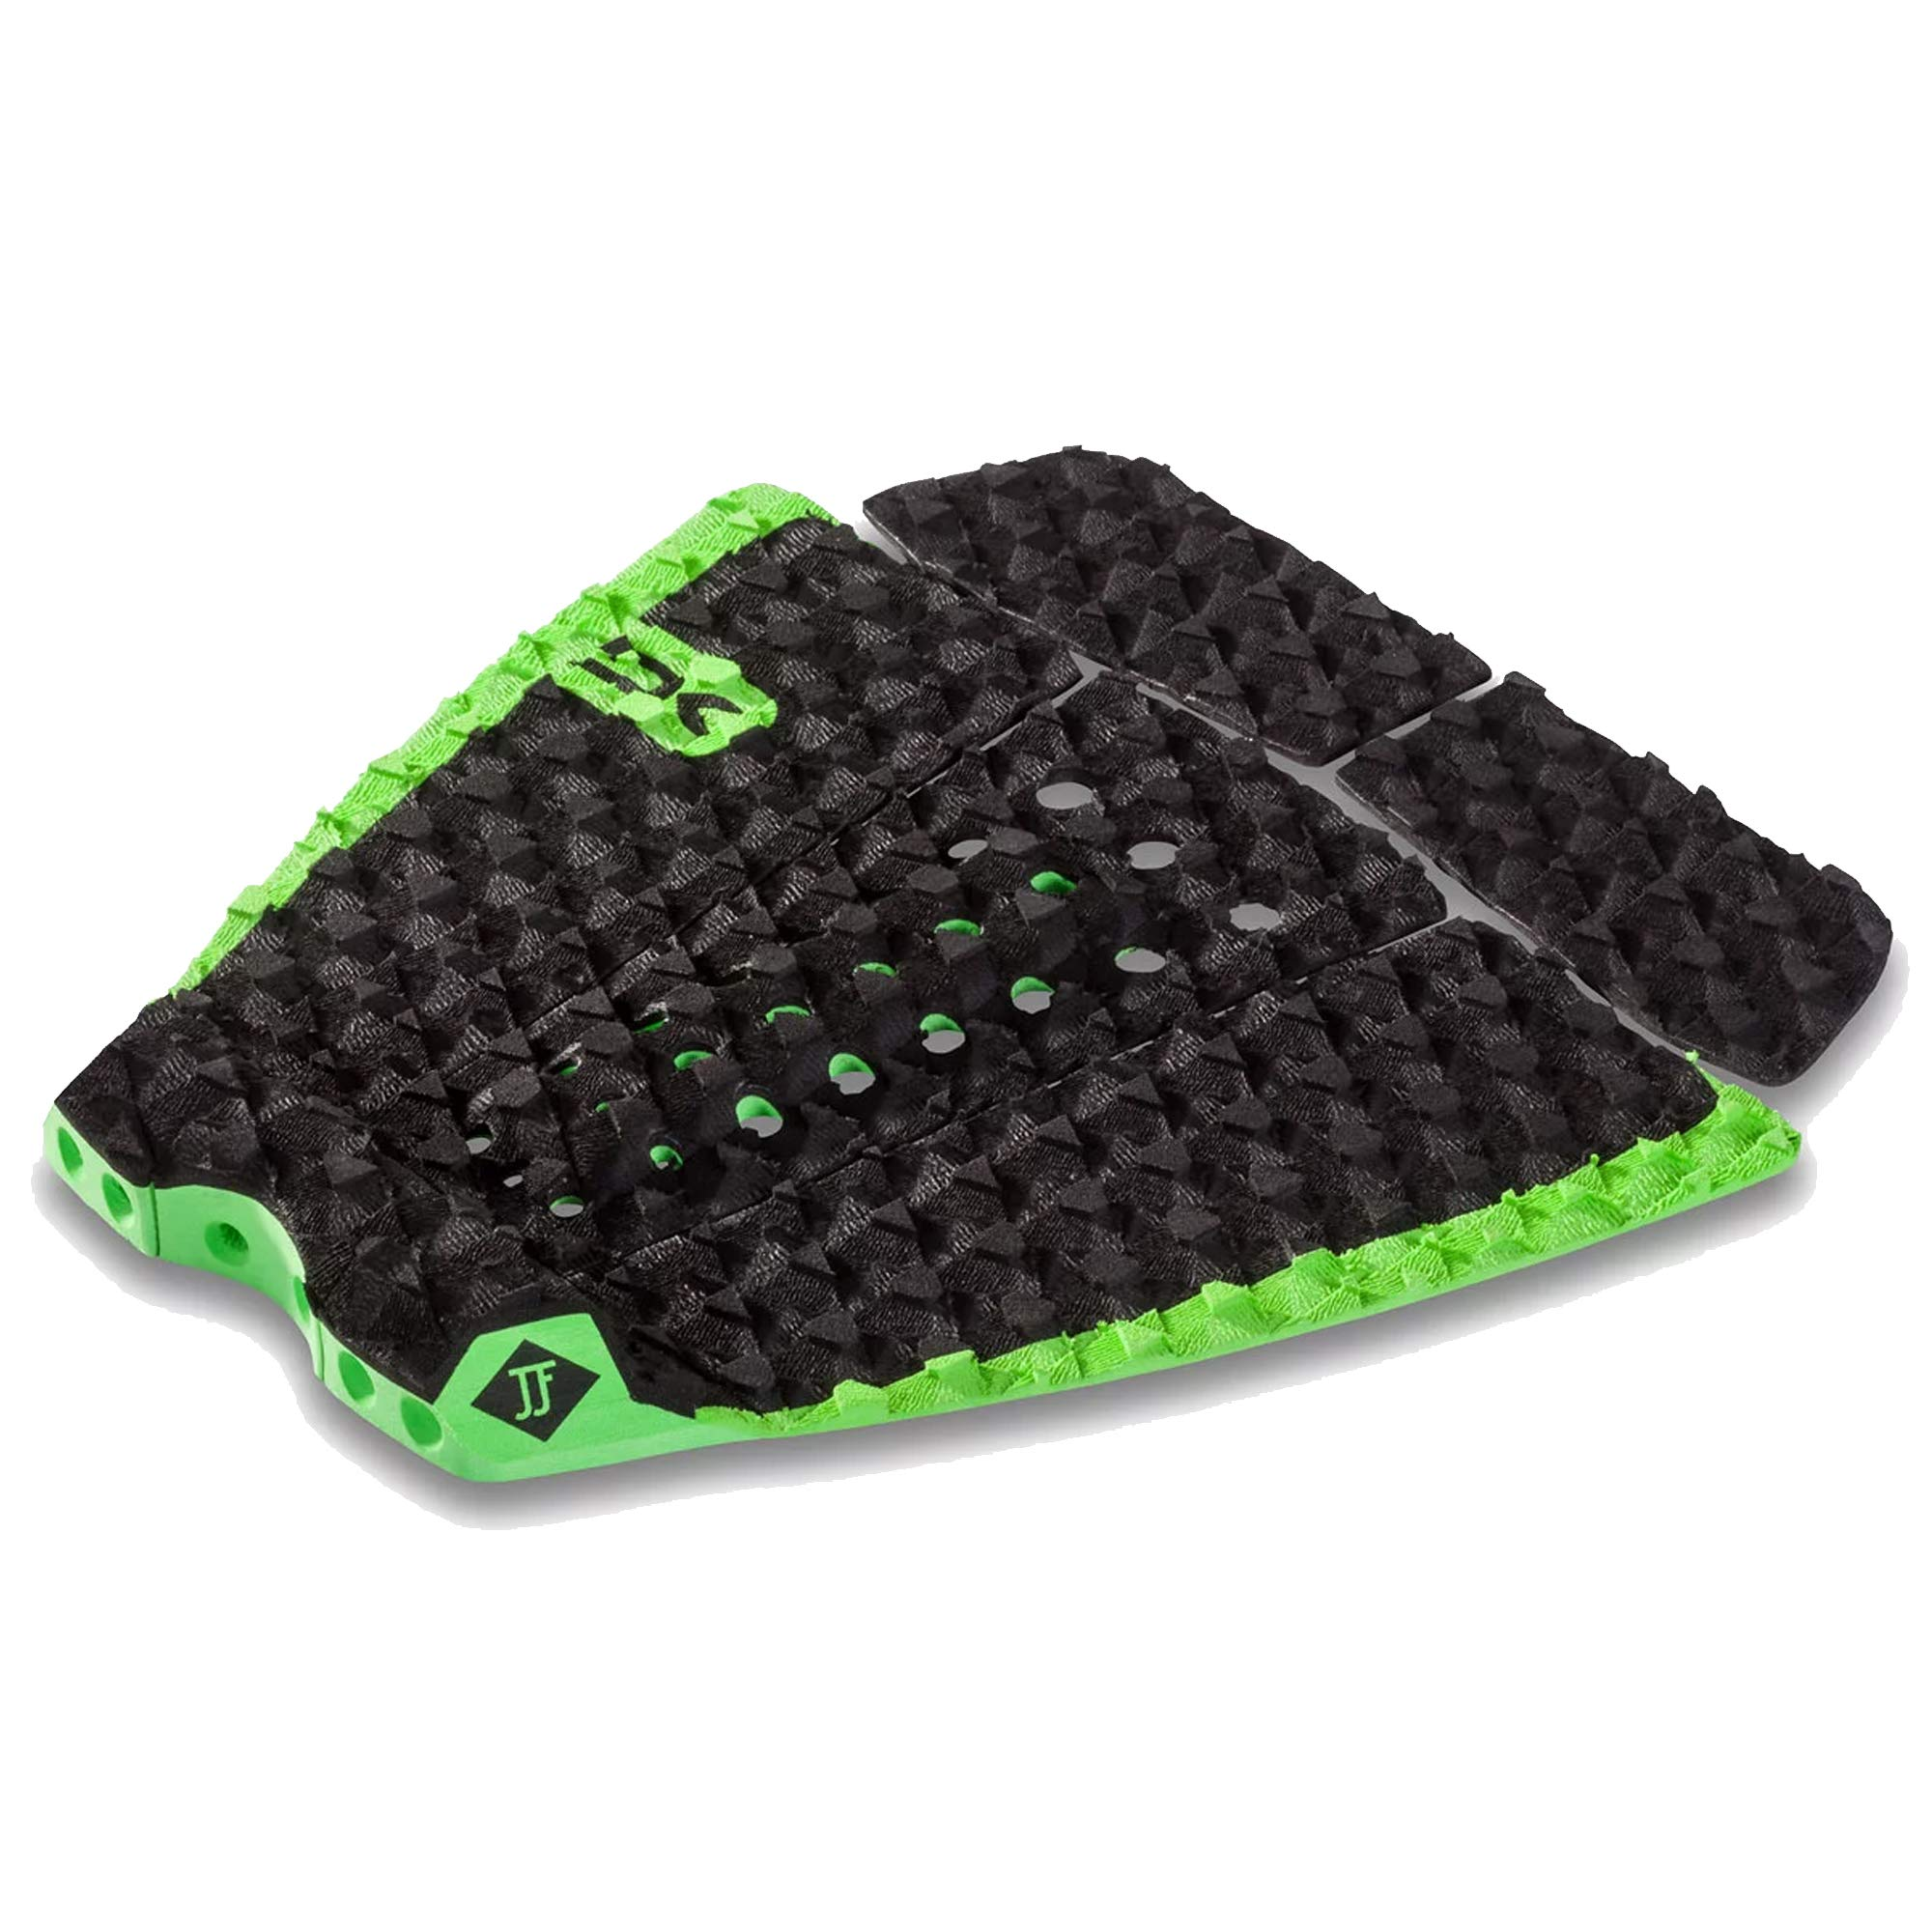 Dakine John John Florence Pro Surf Traction Pad, Black/Green, One Size by Dakine